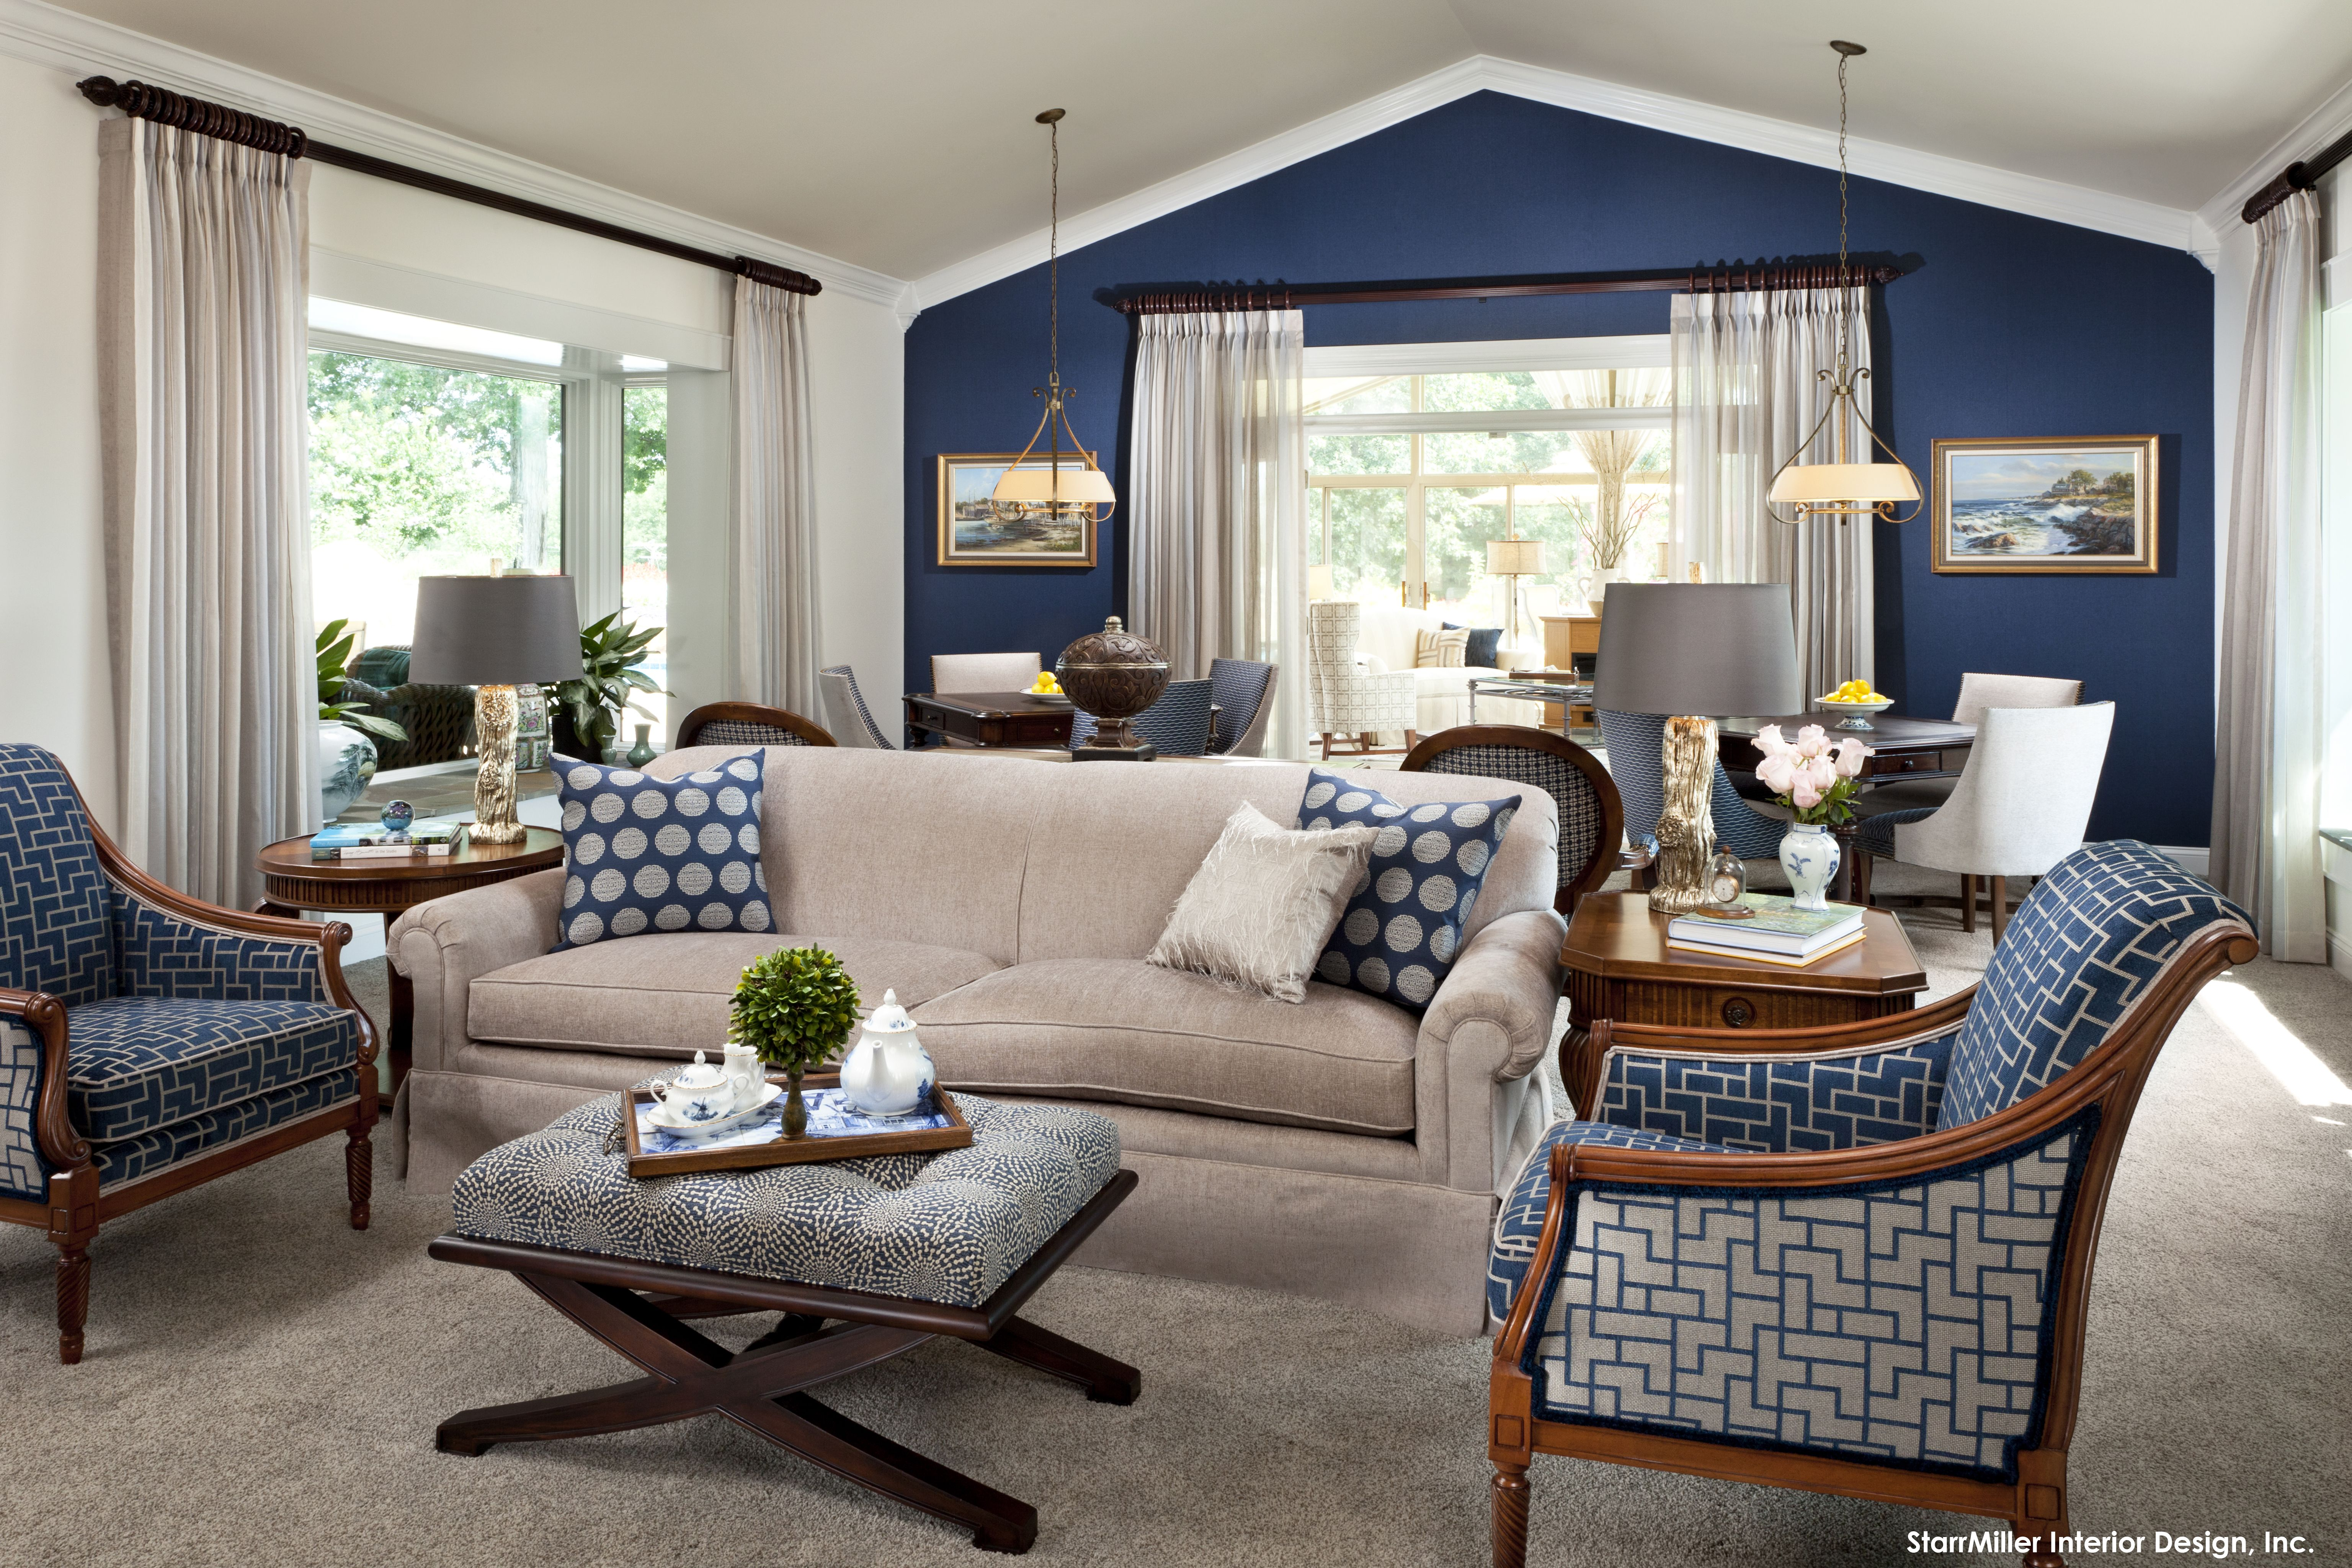 blue accent chairs for living room contemporary 15 lovely designs with accents new pad saving this pin showing the contrast of a wall don t think i m going to go that route